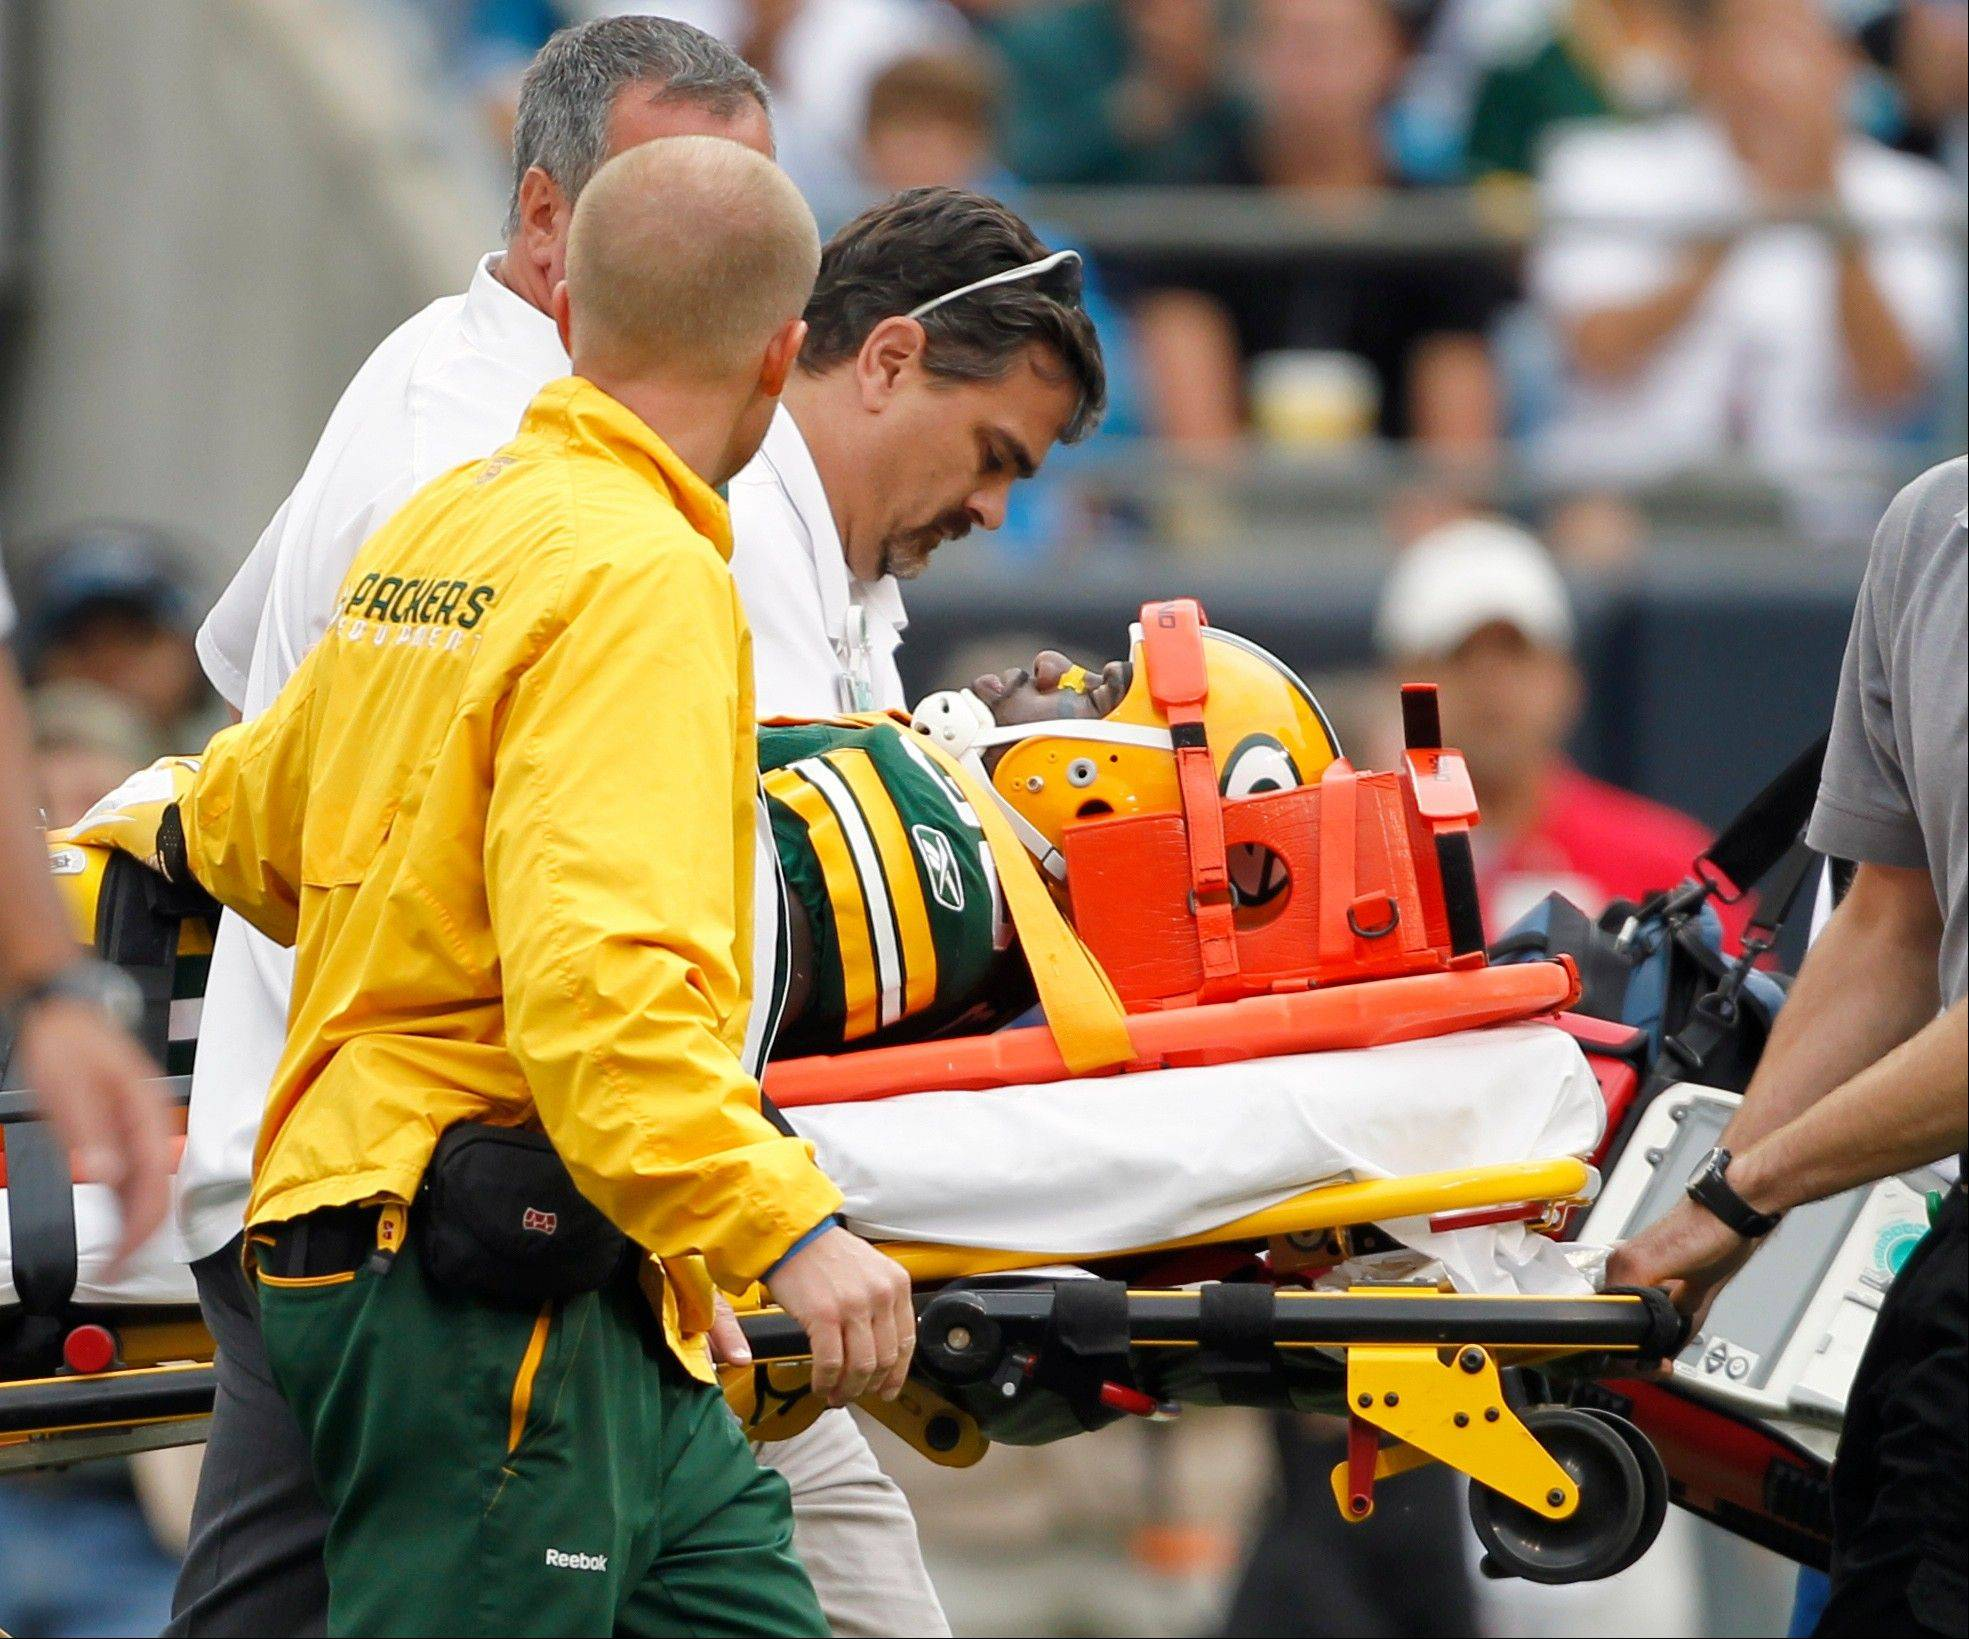 The Green Bay Packers� Nick Collins is carted off the field after being injured during the fourth quarter of the Packers� 30-23 win over the Carolina Panthers Sunday.